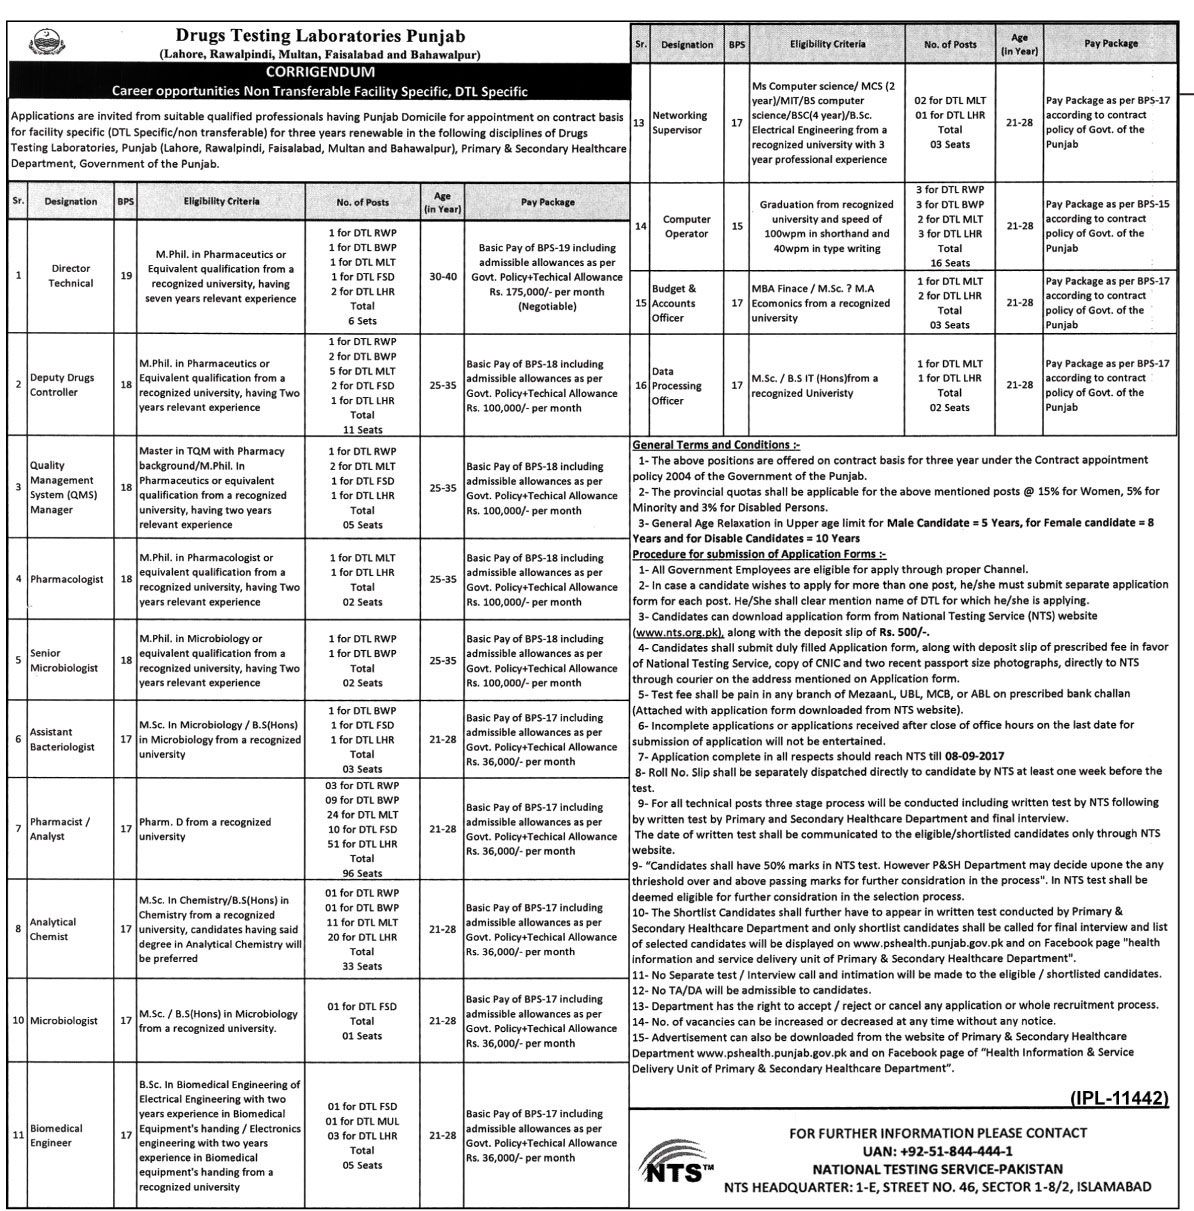 NTS Jobs in Drugs Testing Laboratories Punjab (188 Positions) | Jobs